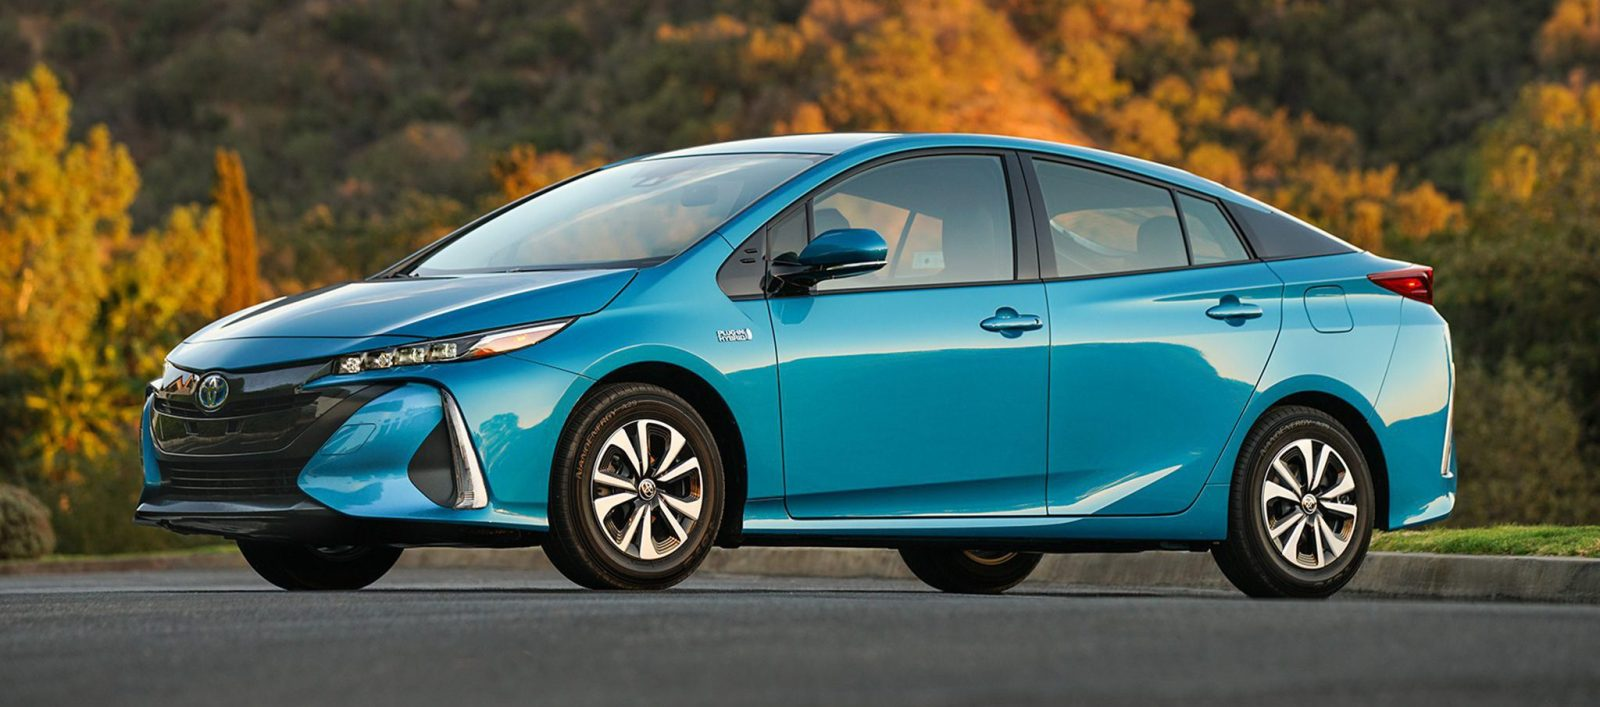 toyota-announces-major-expansion-of-its-electric-car-plans-10-new-bevs-all-models-to-have-electric-motors